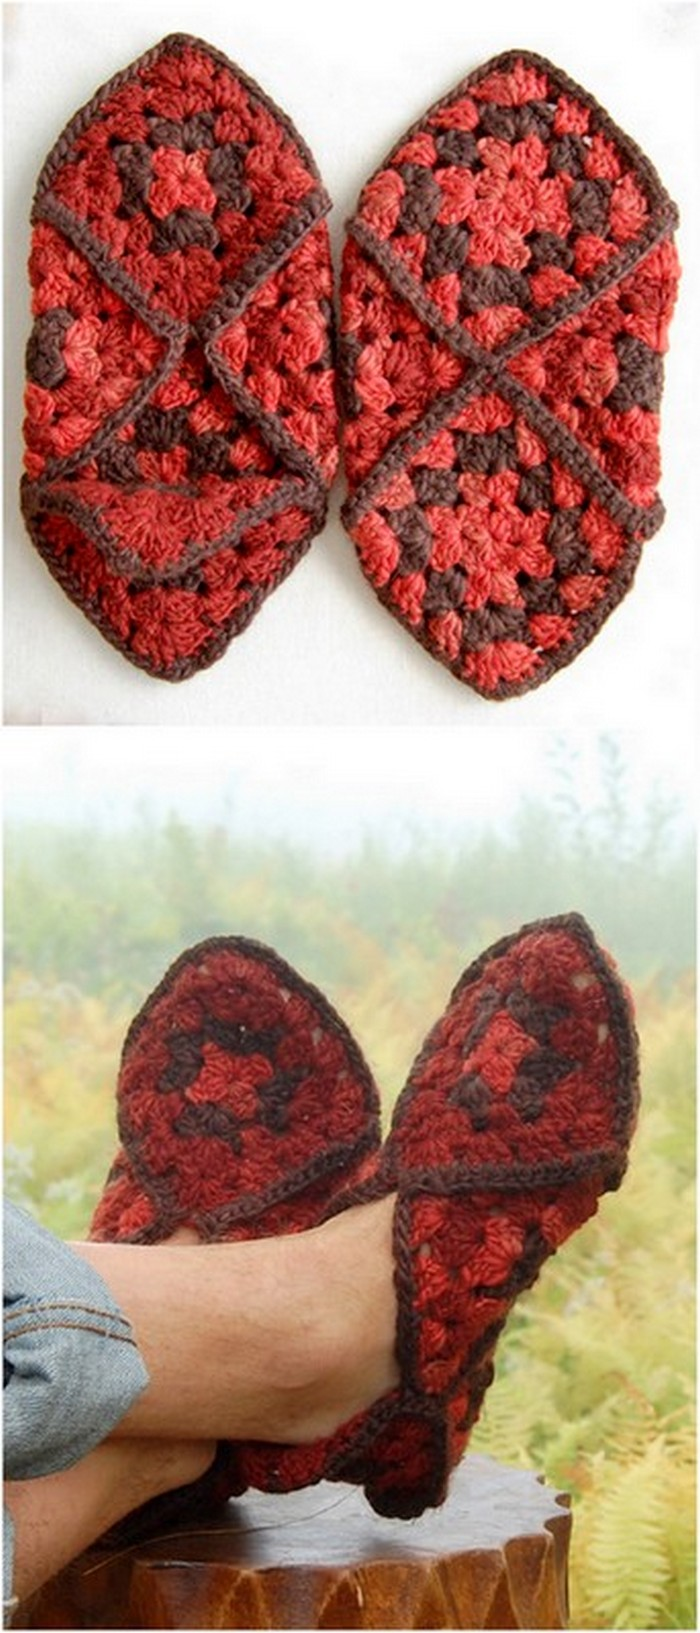 Easy And Fast Slippers Free Crochet Pattern.